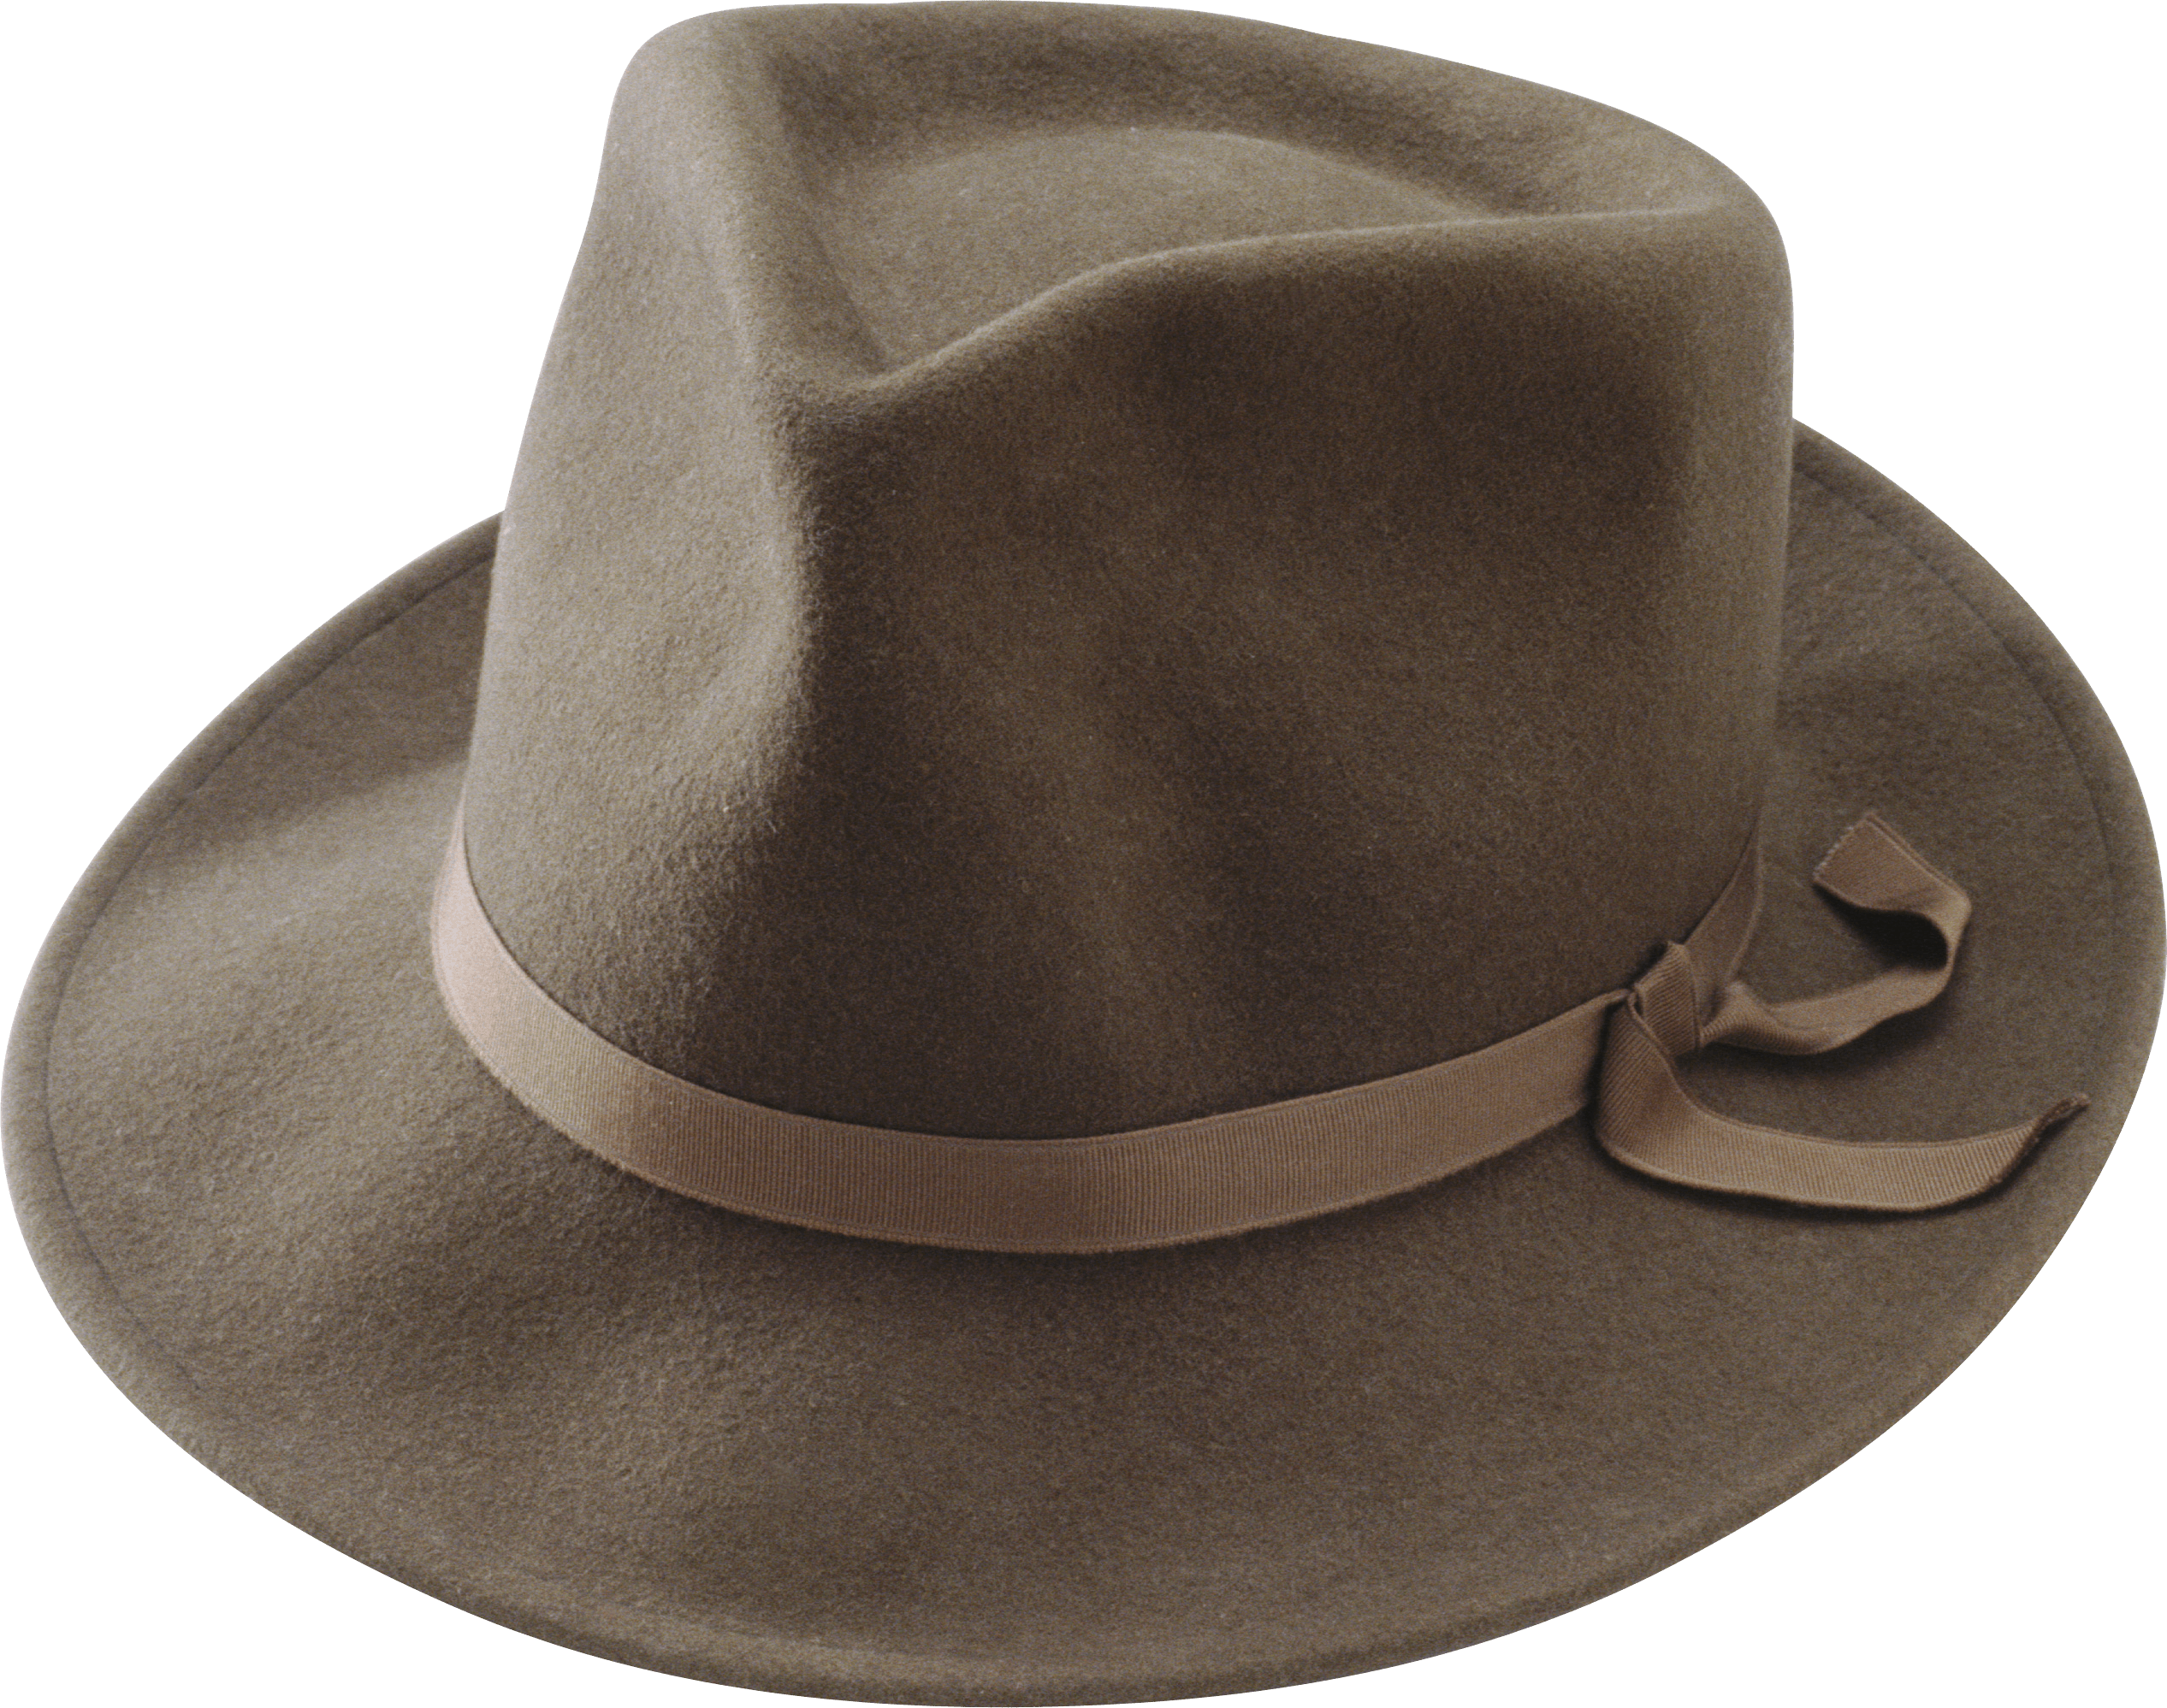 Hat PNG - 20628